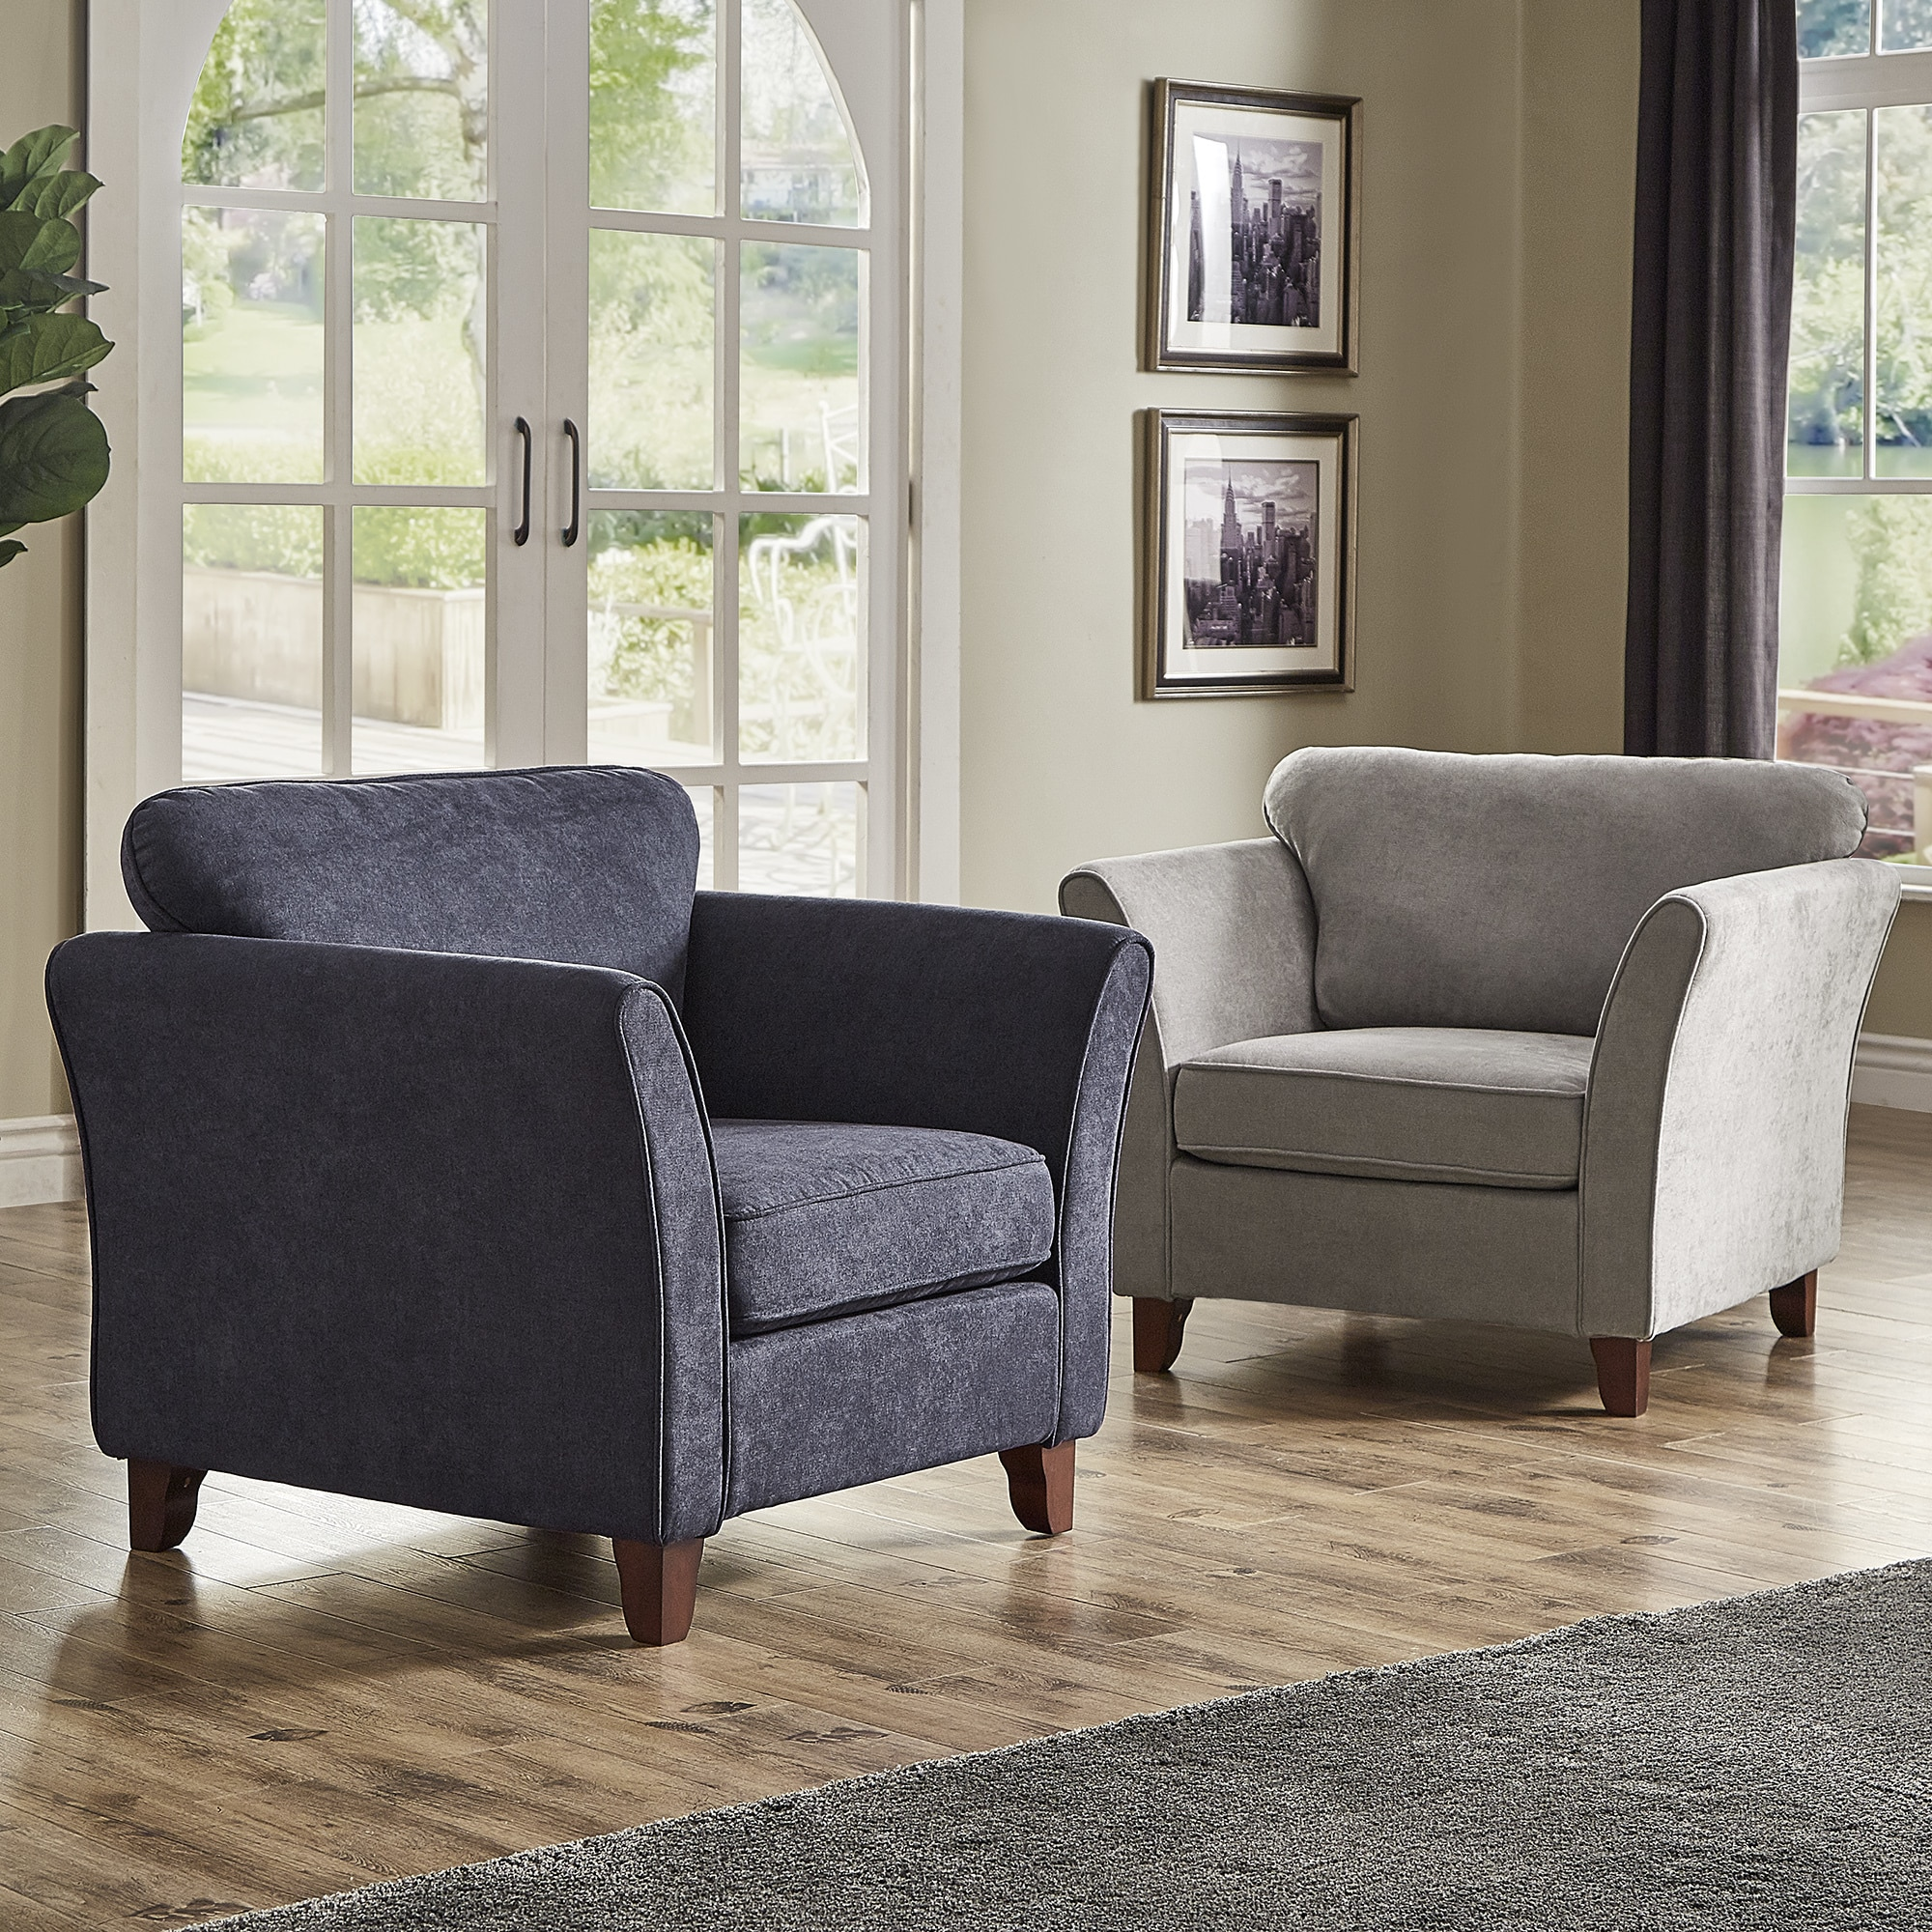 Gia low profile living room chair by inspire q classic